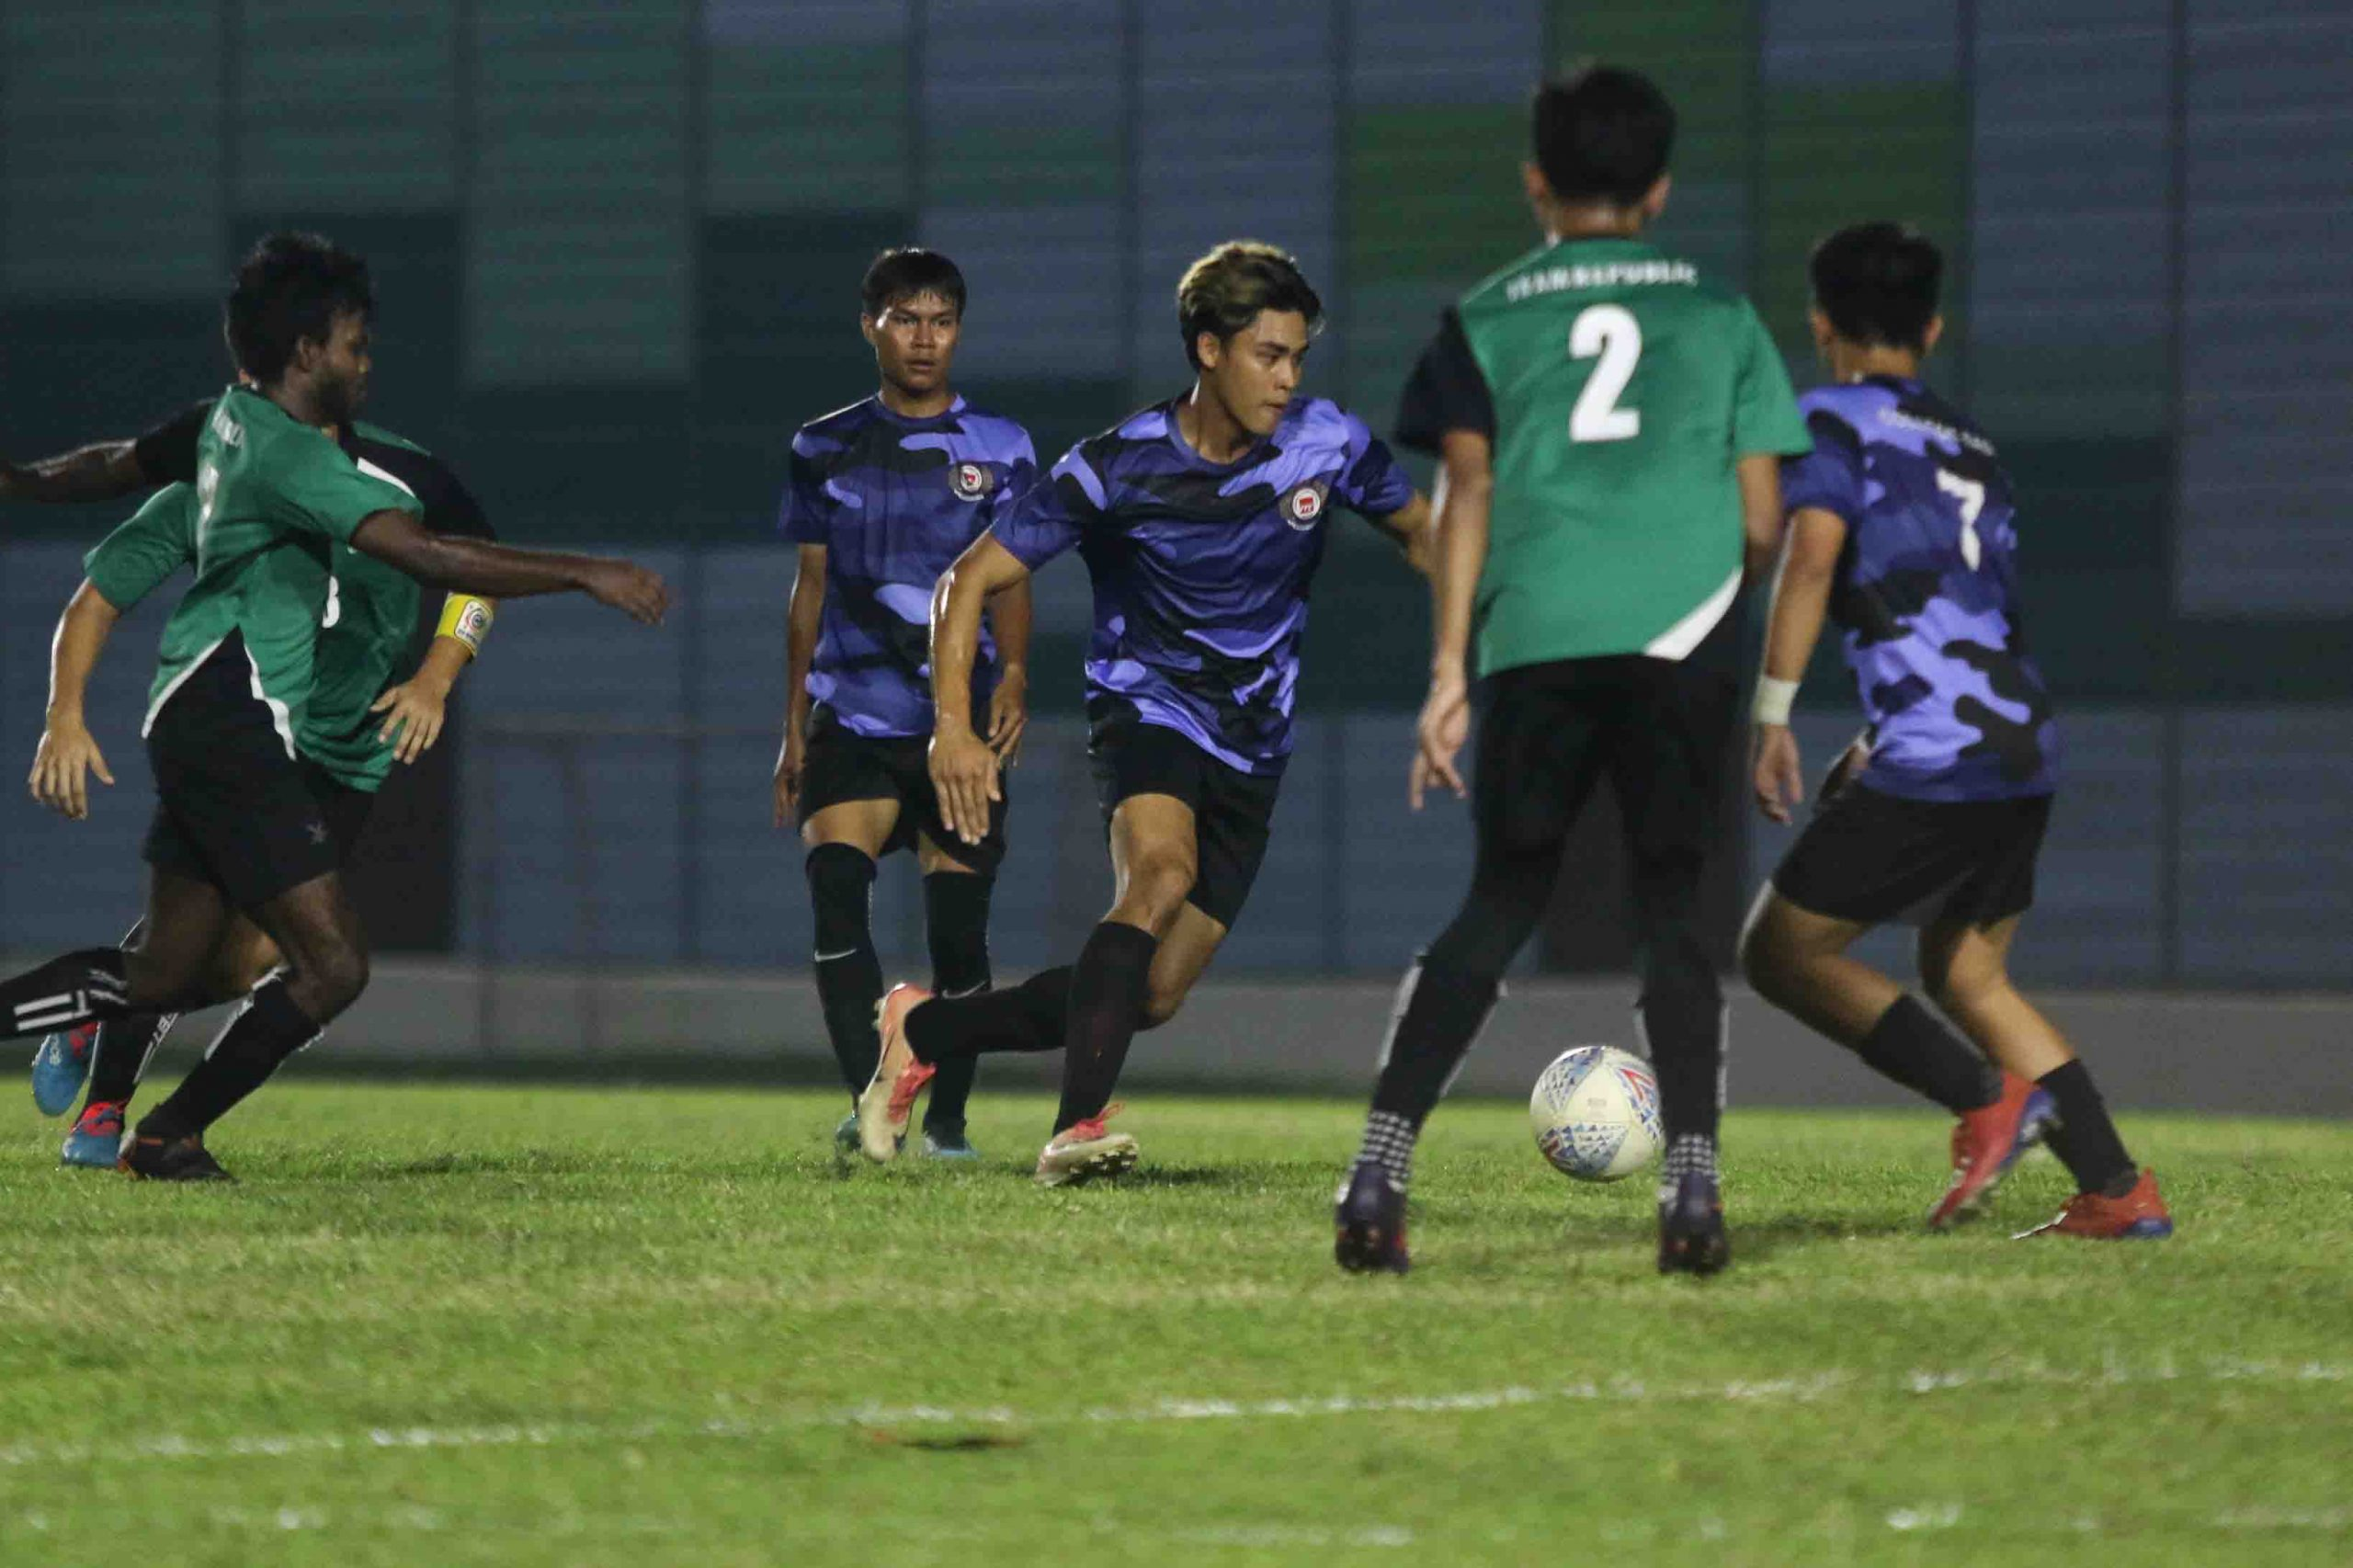 Muhammad Khairul Ikhwan (ITE #25) dribbles the ball through midfield. (Photo 5 © Clara Lau/Red Sports)